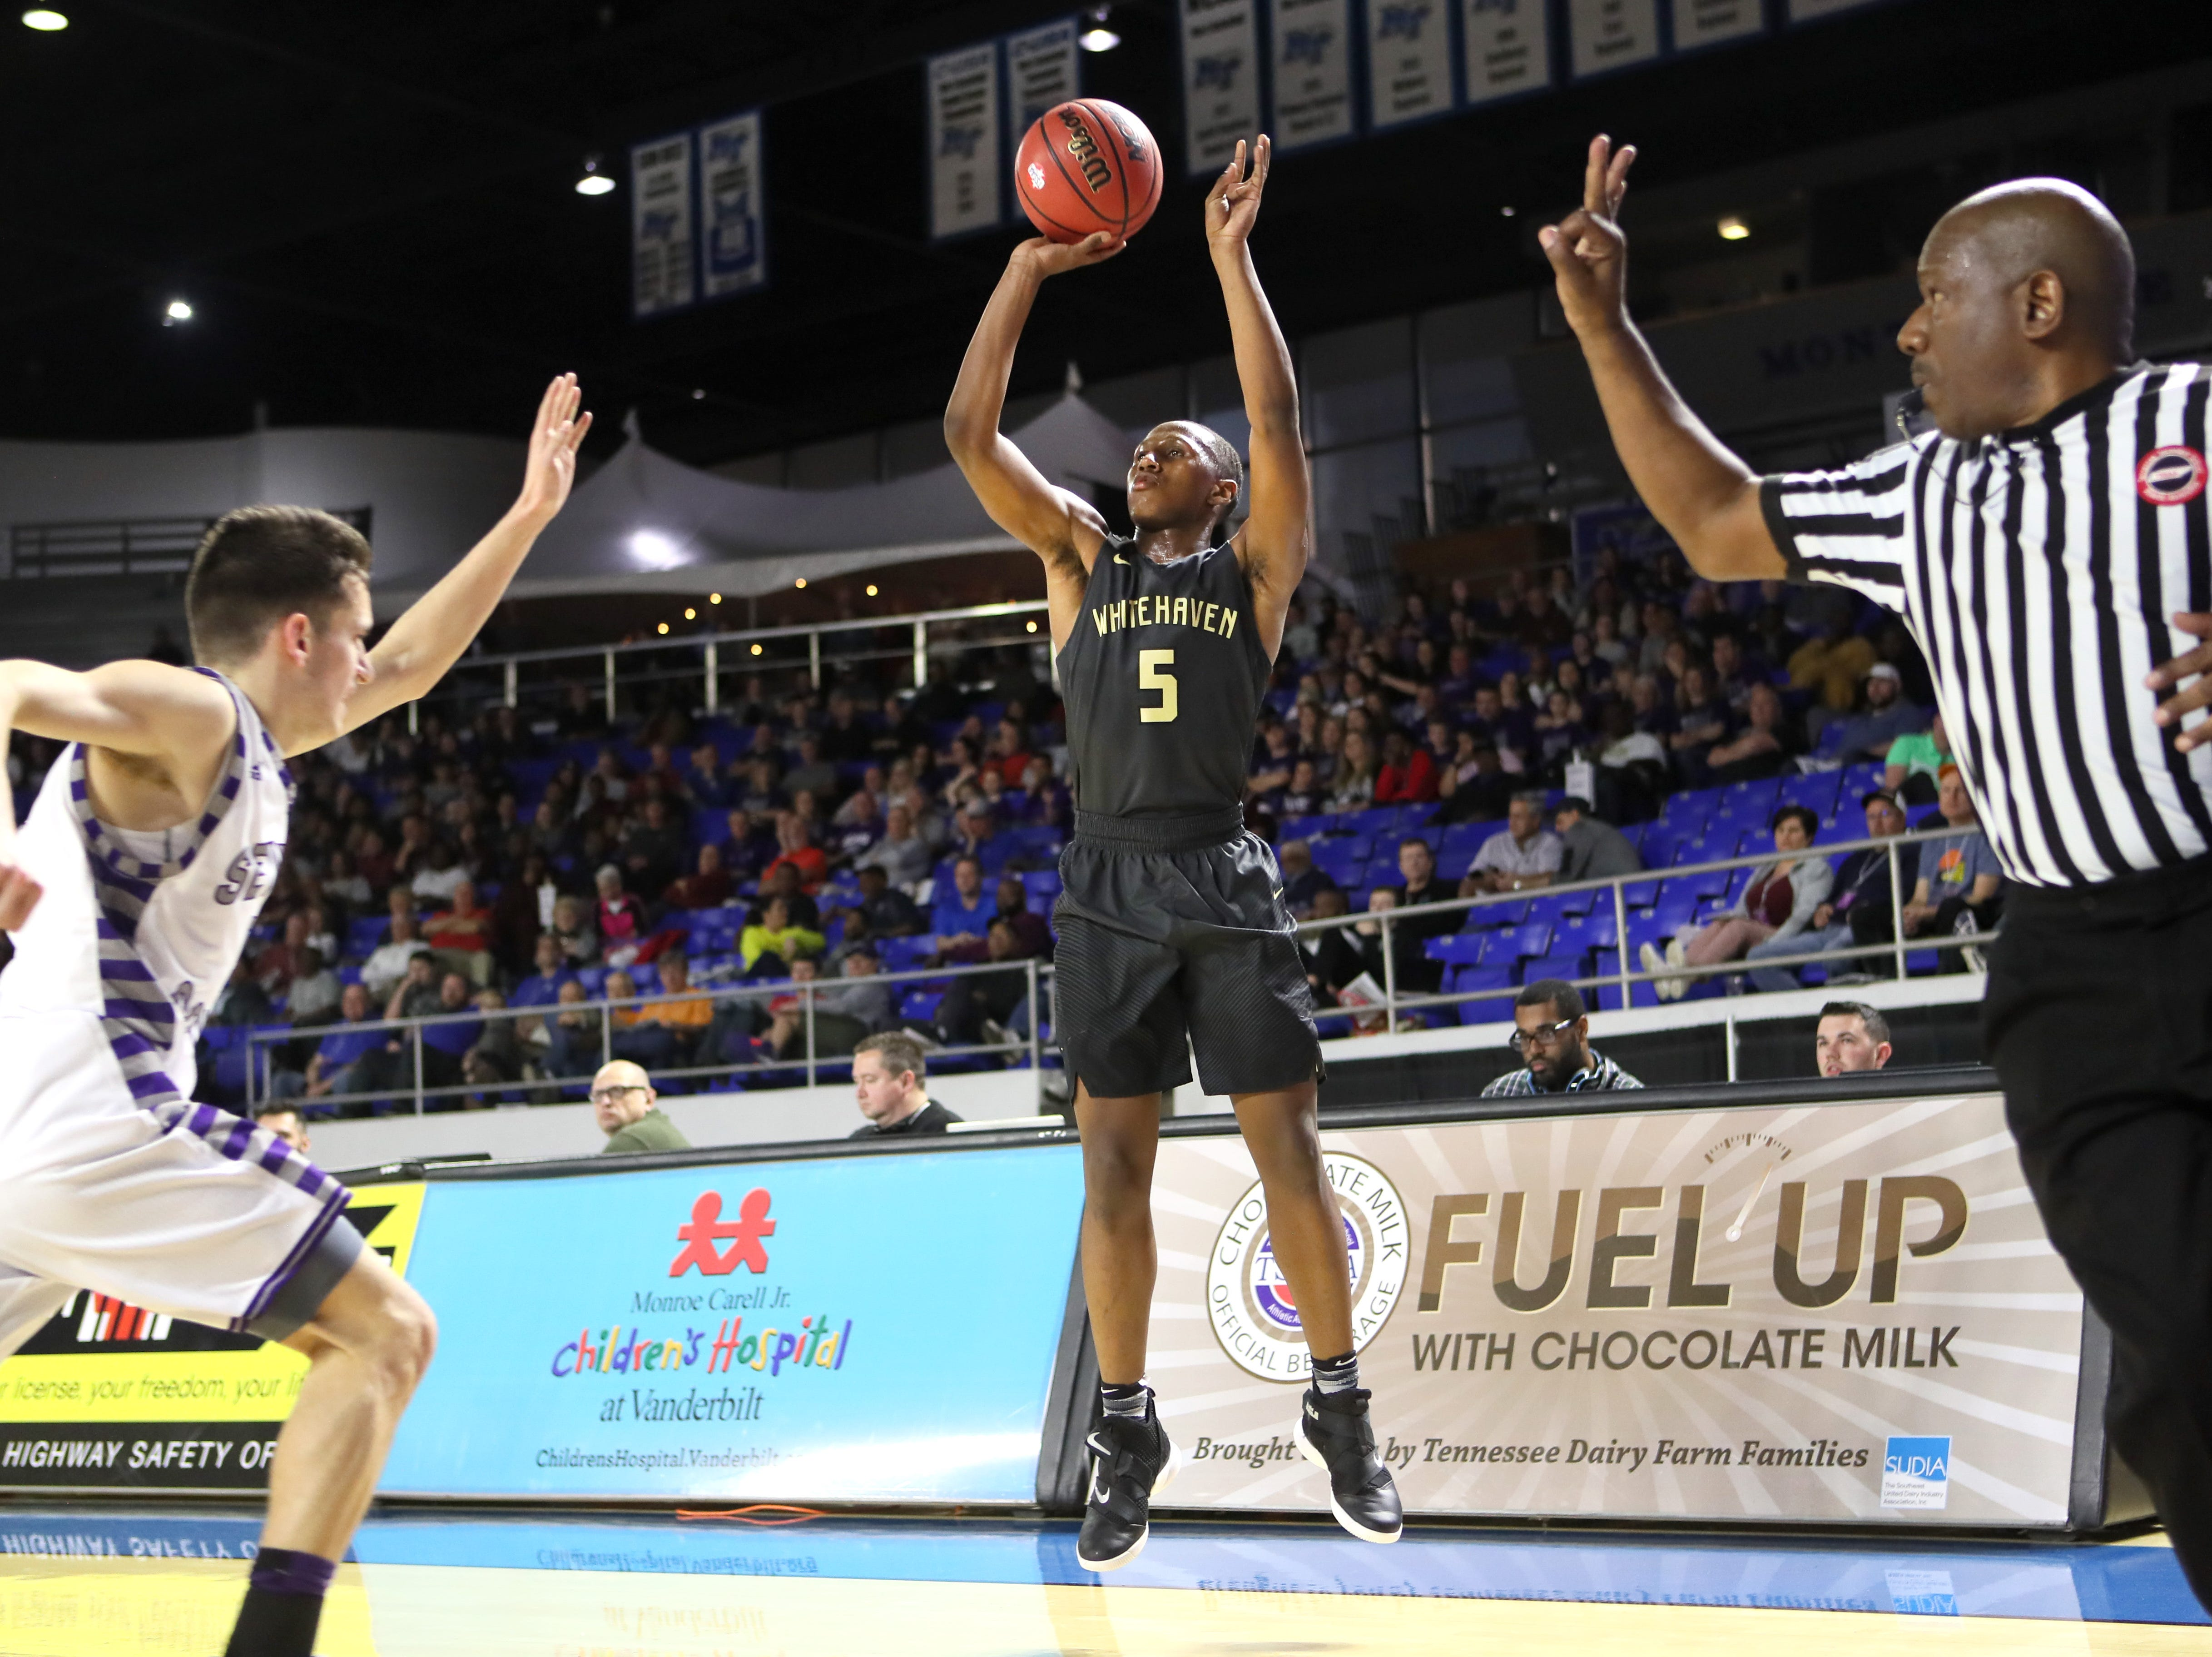 Whitehaven's Ladricus Pittman shoots a 3-pointer against Sevier County during the TSSAA Division I basketball state tournament at the Murphy Center in Murfreesboro, Tenn. on Wednesday, March 13, 2019.